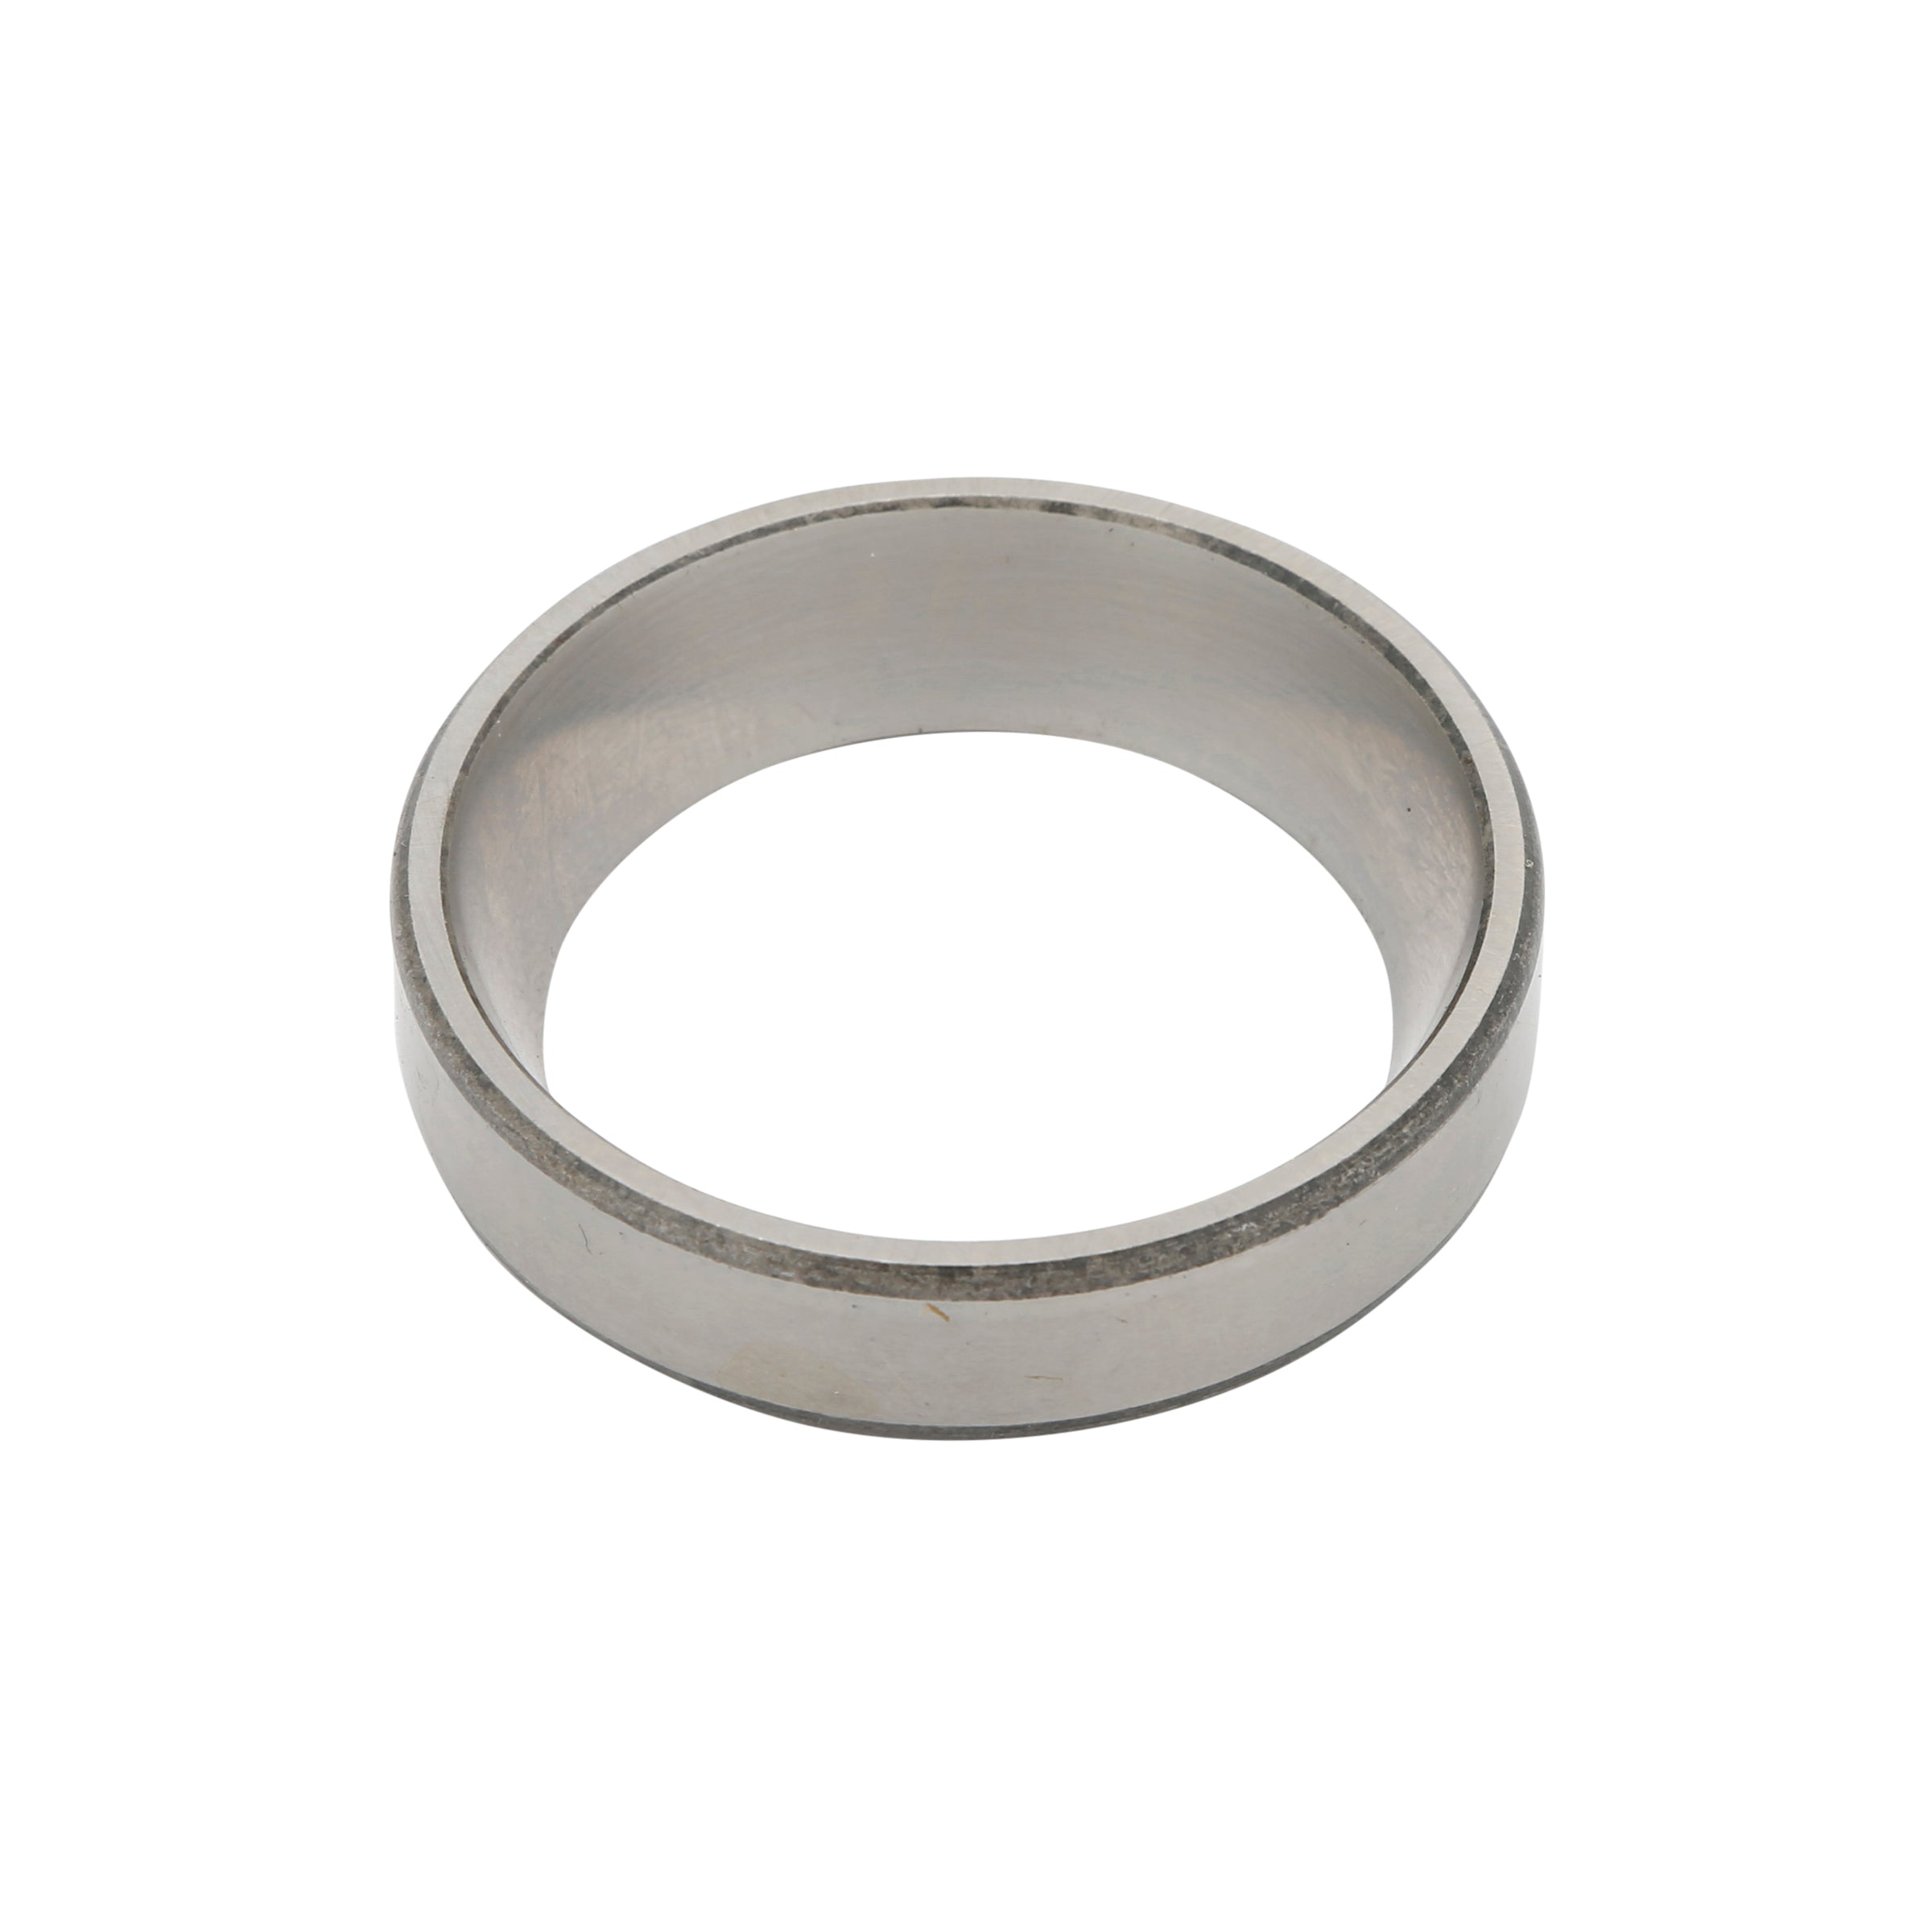 Steering Worm Bearing Lower Cup • 2 Tooth